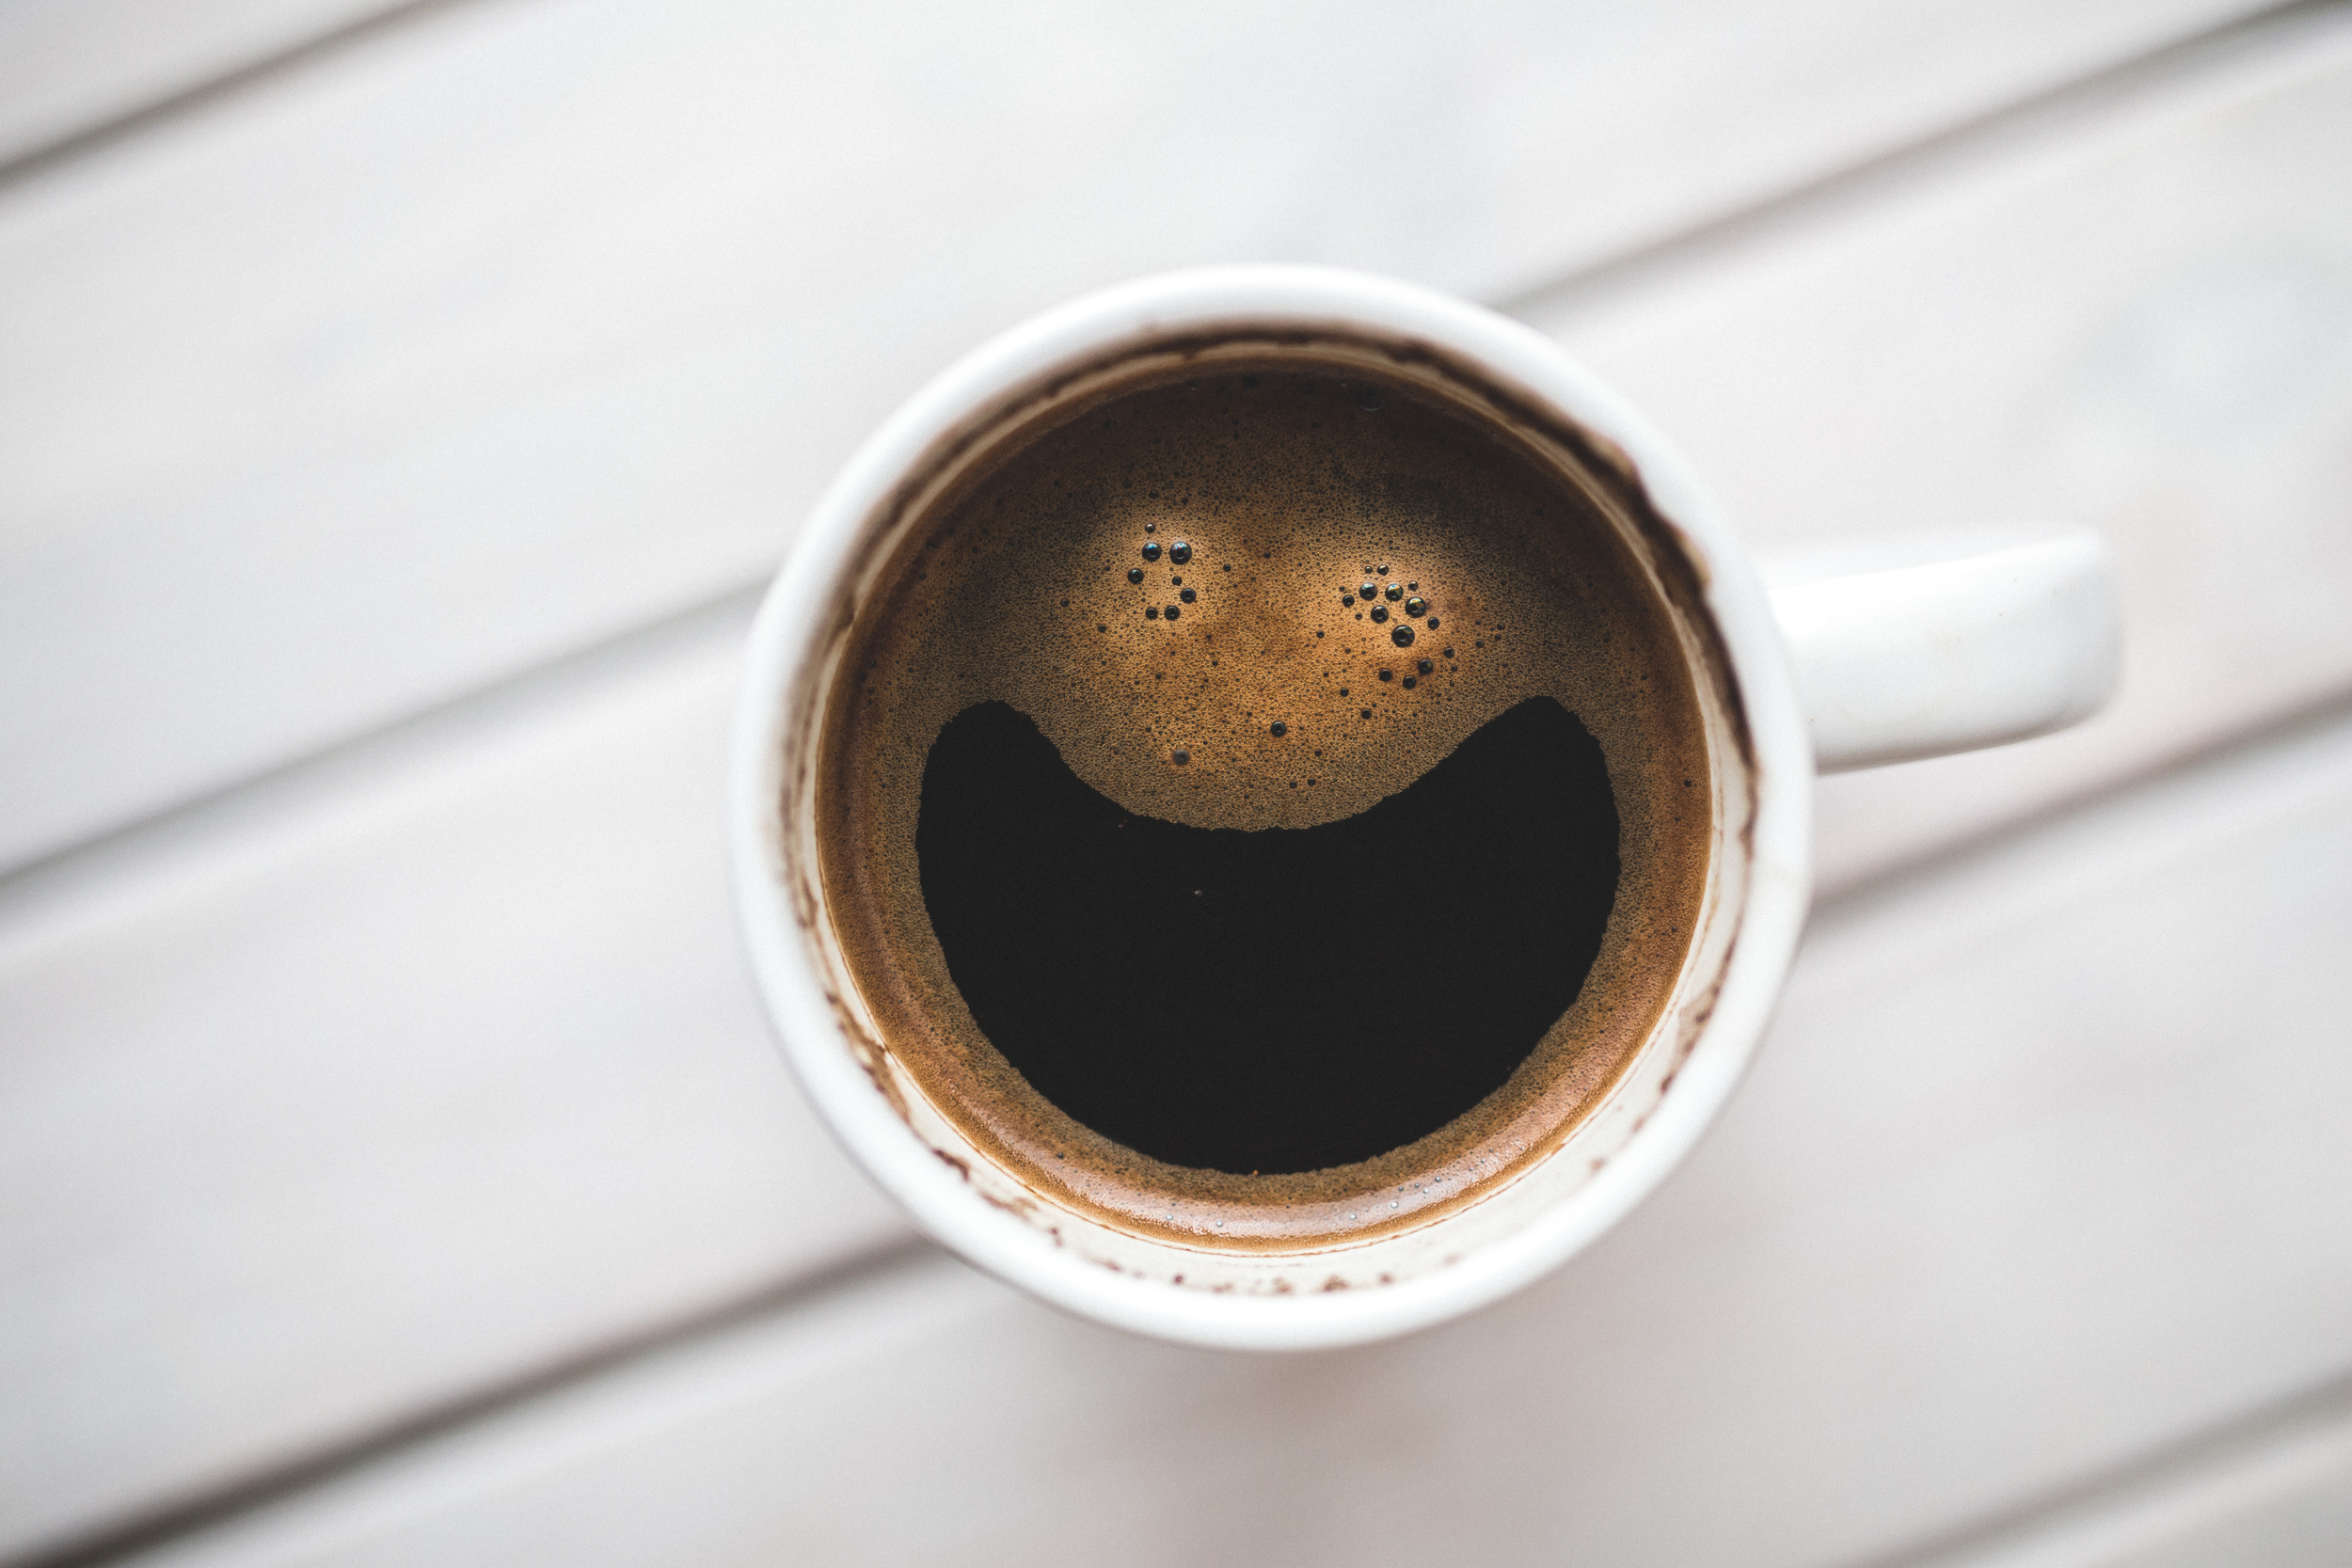 Your coffee will be happy you asked for 10% off!